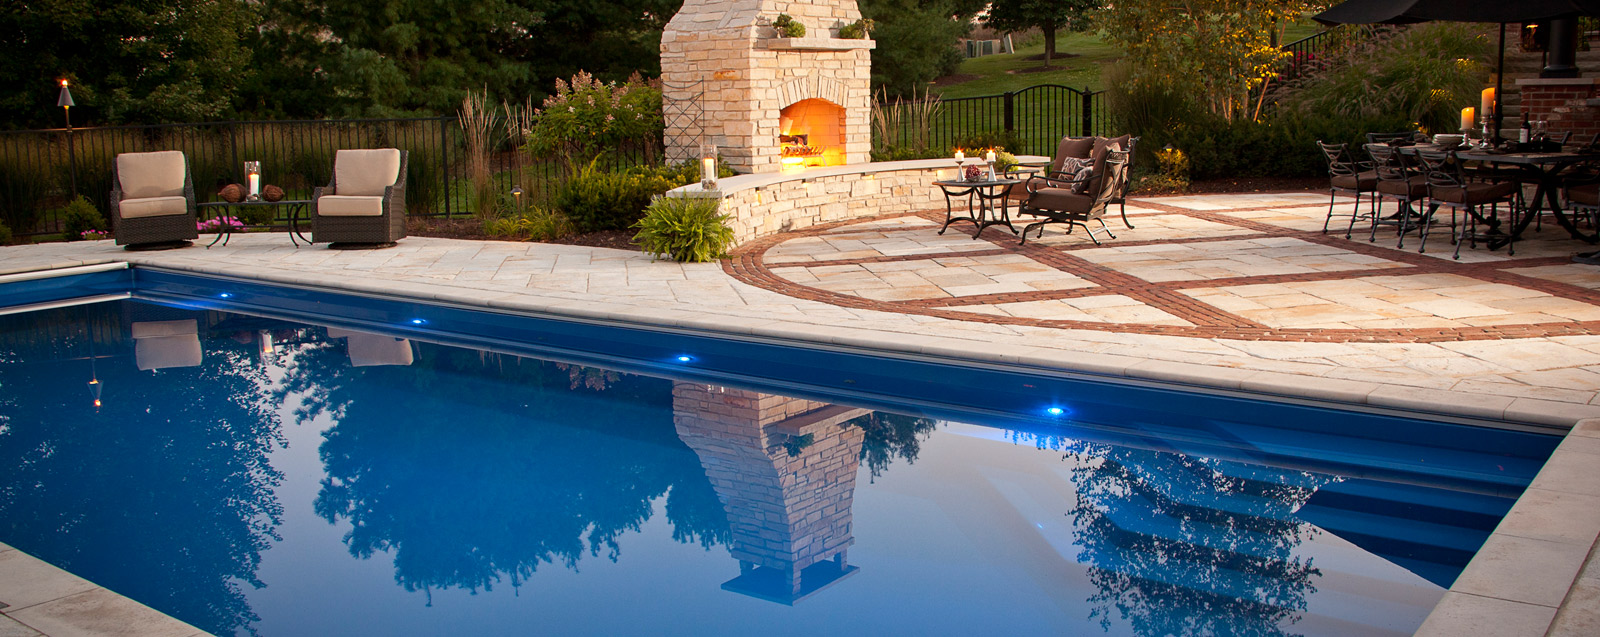 Fiberglass pools jackson vinyl liner pools jackson for Pool design jackson ms